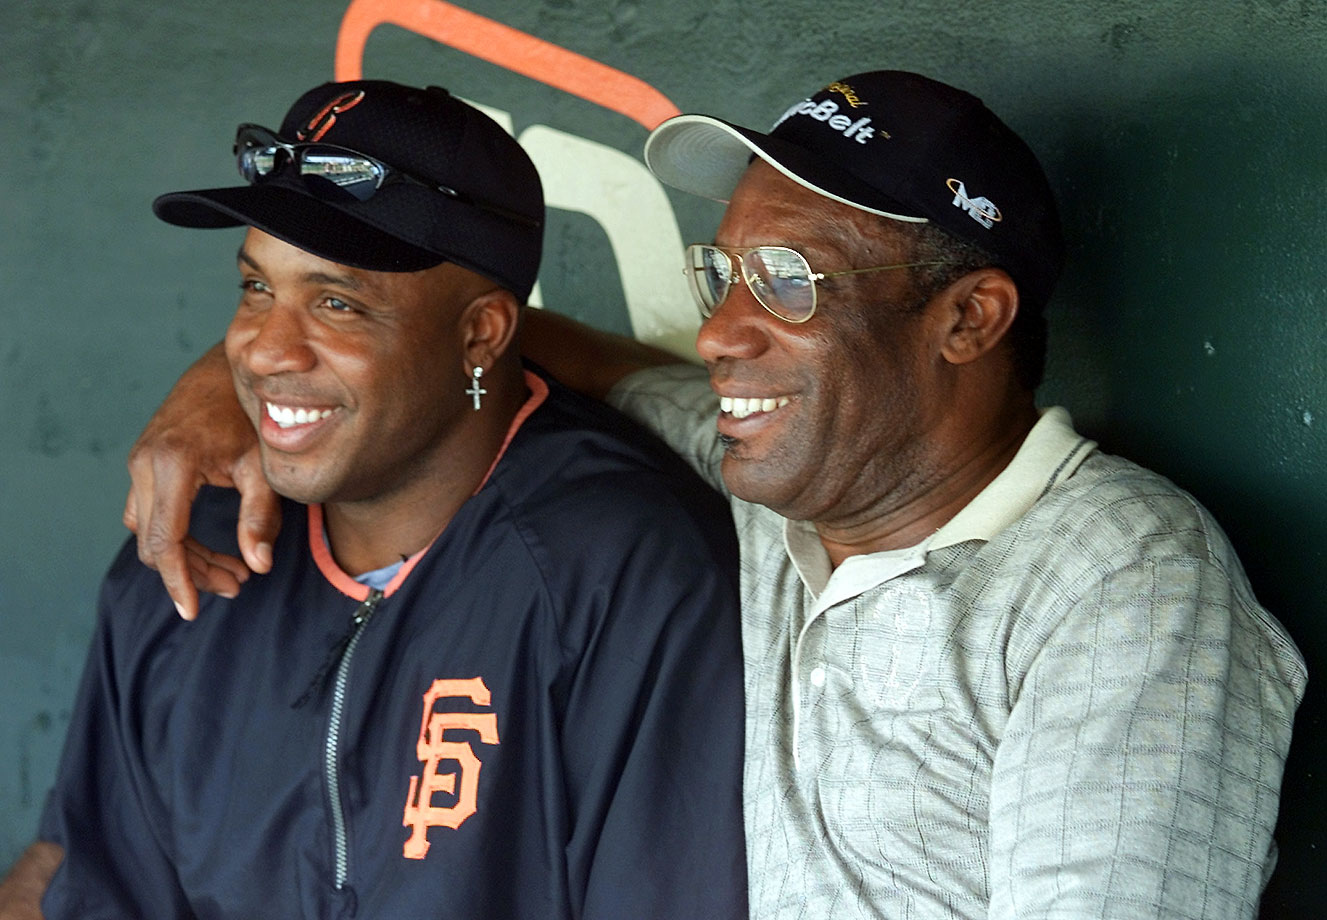 Barry and Bobby Bonds are the only two players in major league history to have hit 300 home runs and stolen 400 bases in a career.